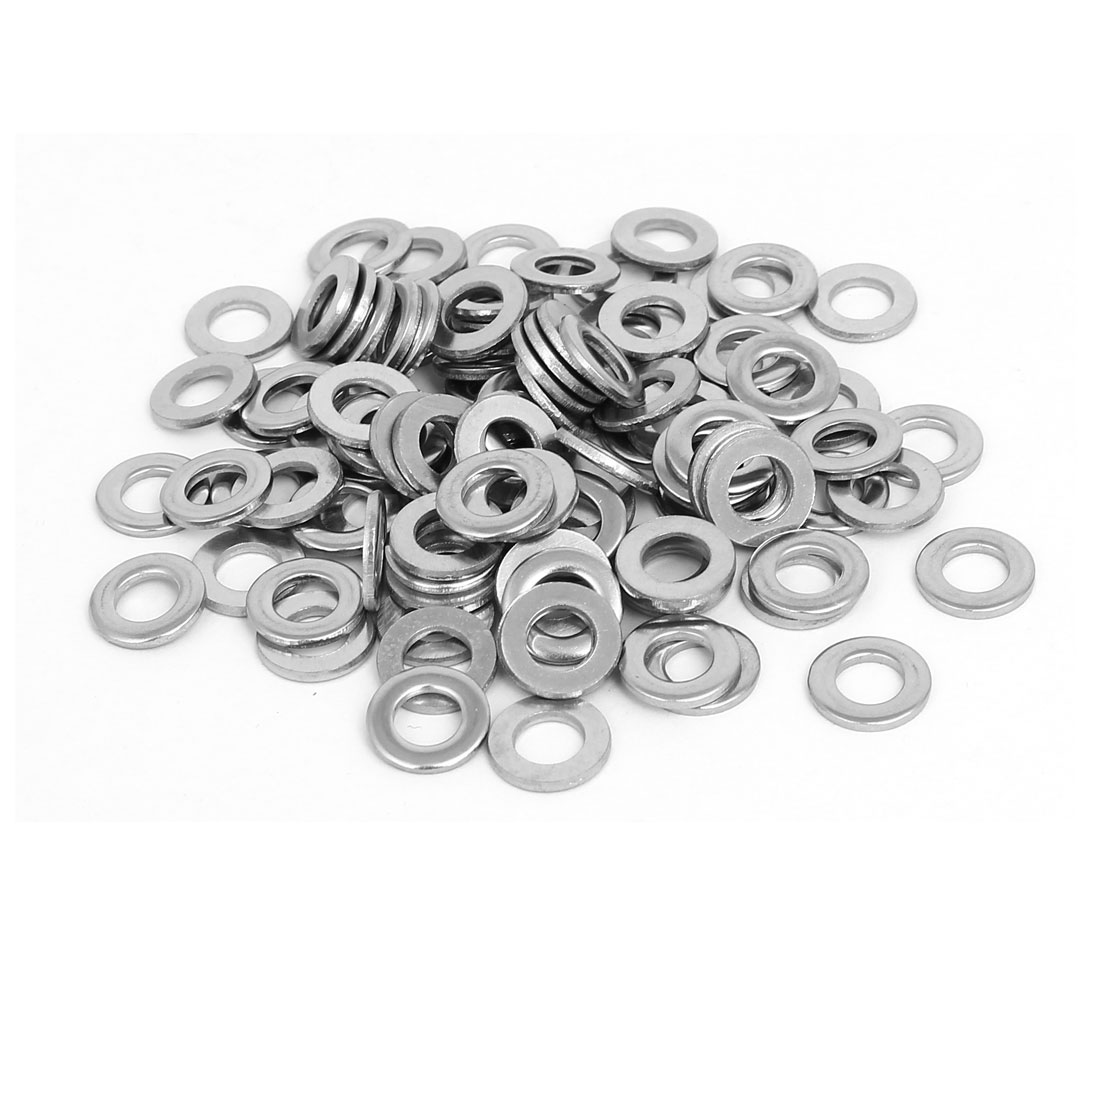 M6x12mmx1.6mm 316 Stainless Steel Flat Washers Gasket Fastener 100pcs